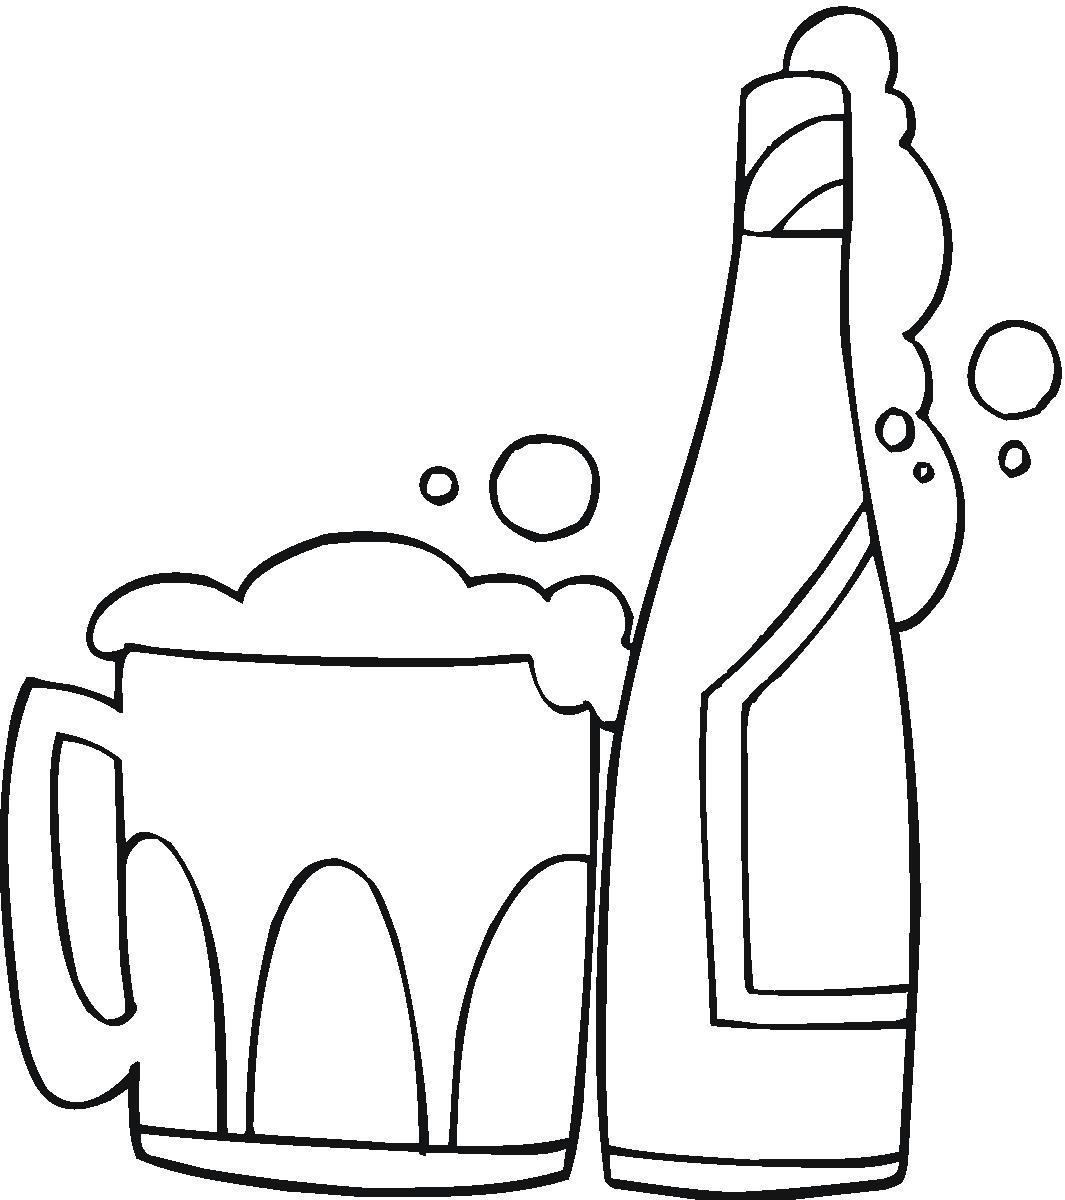 Alcohol clipart black and white Clipart Alcohol Alcohol clip clipart